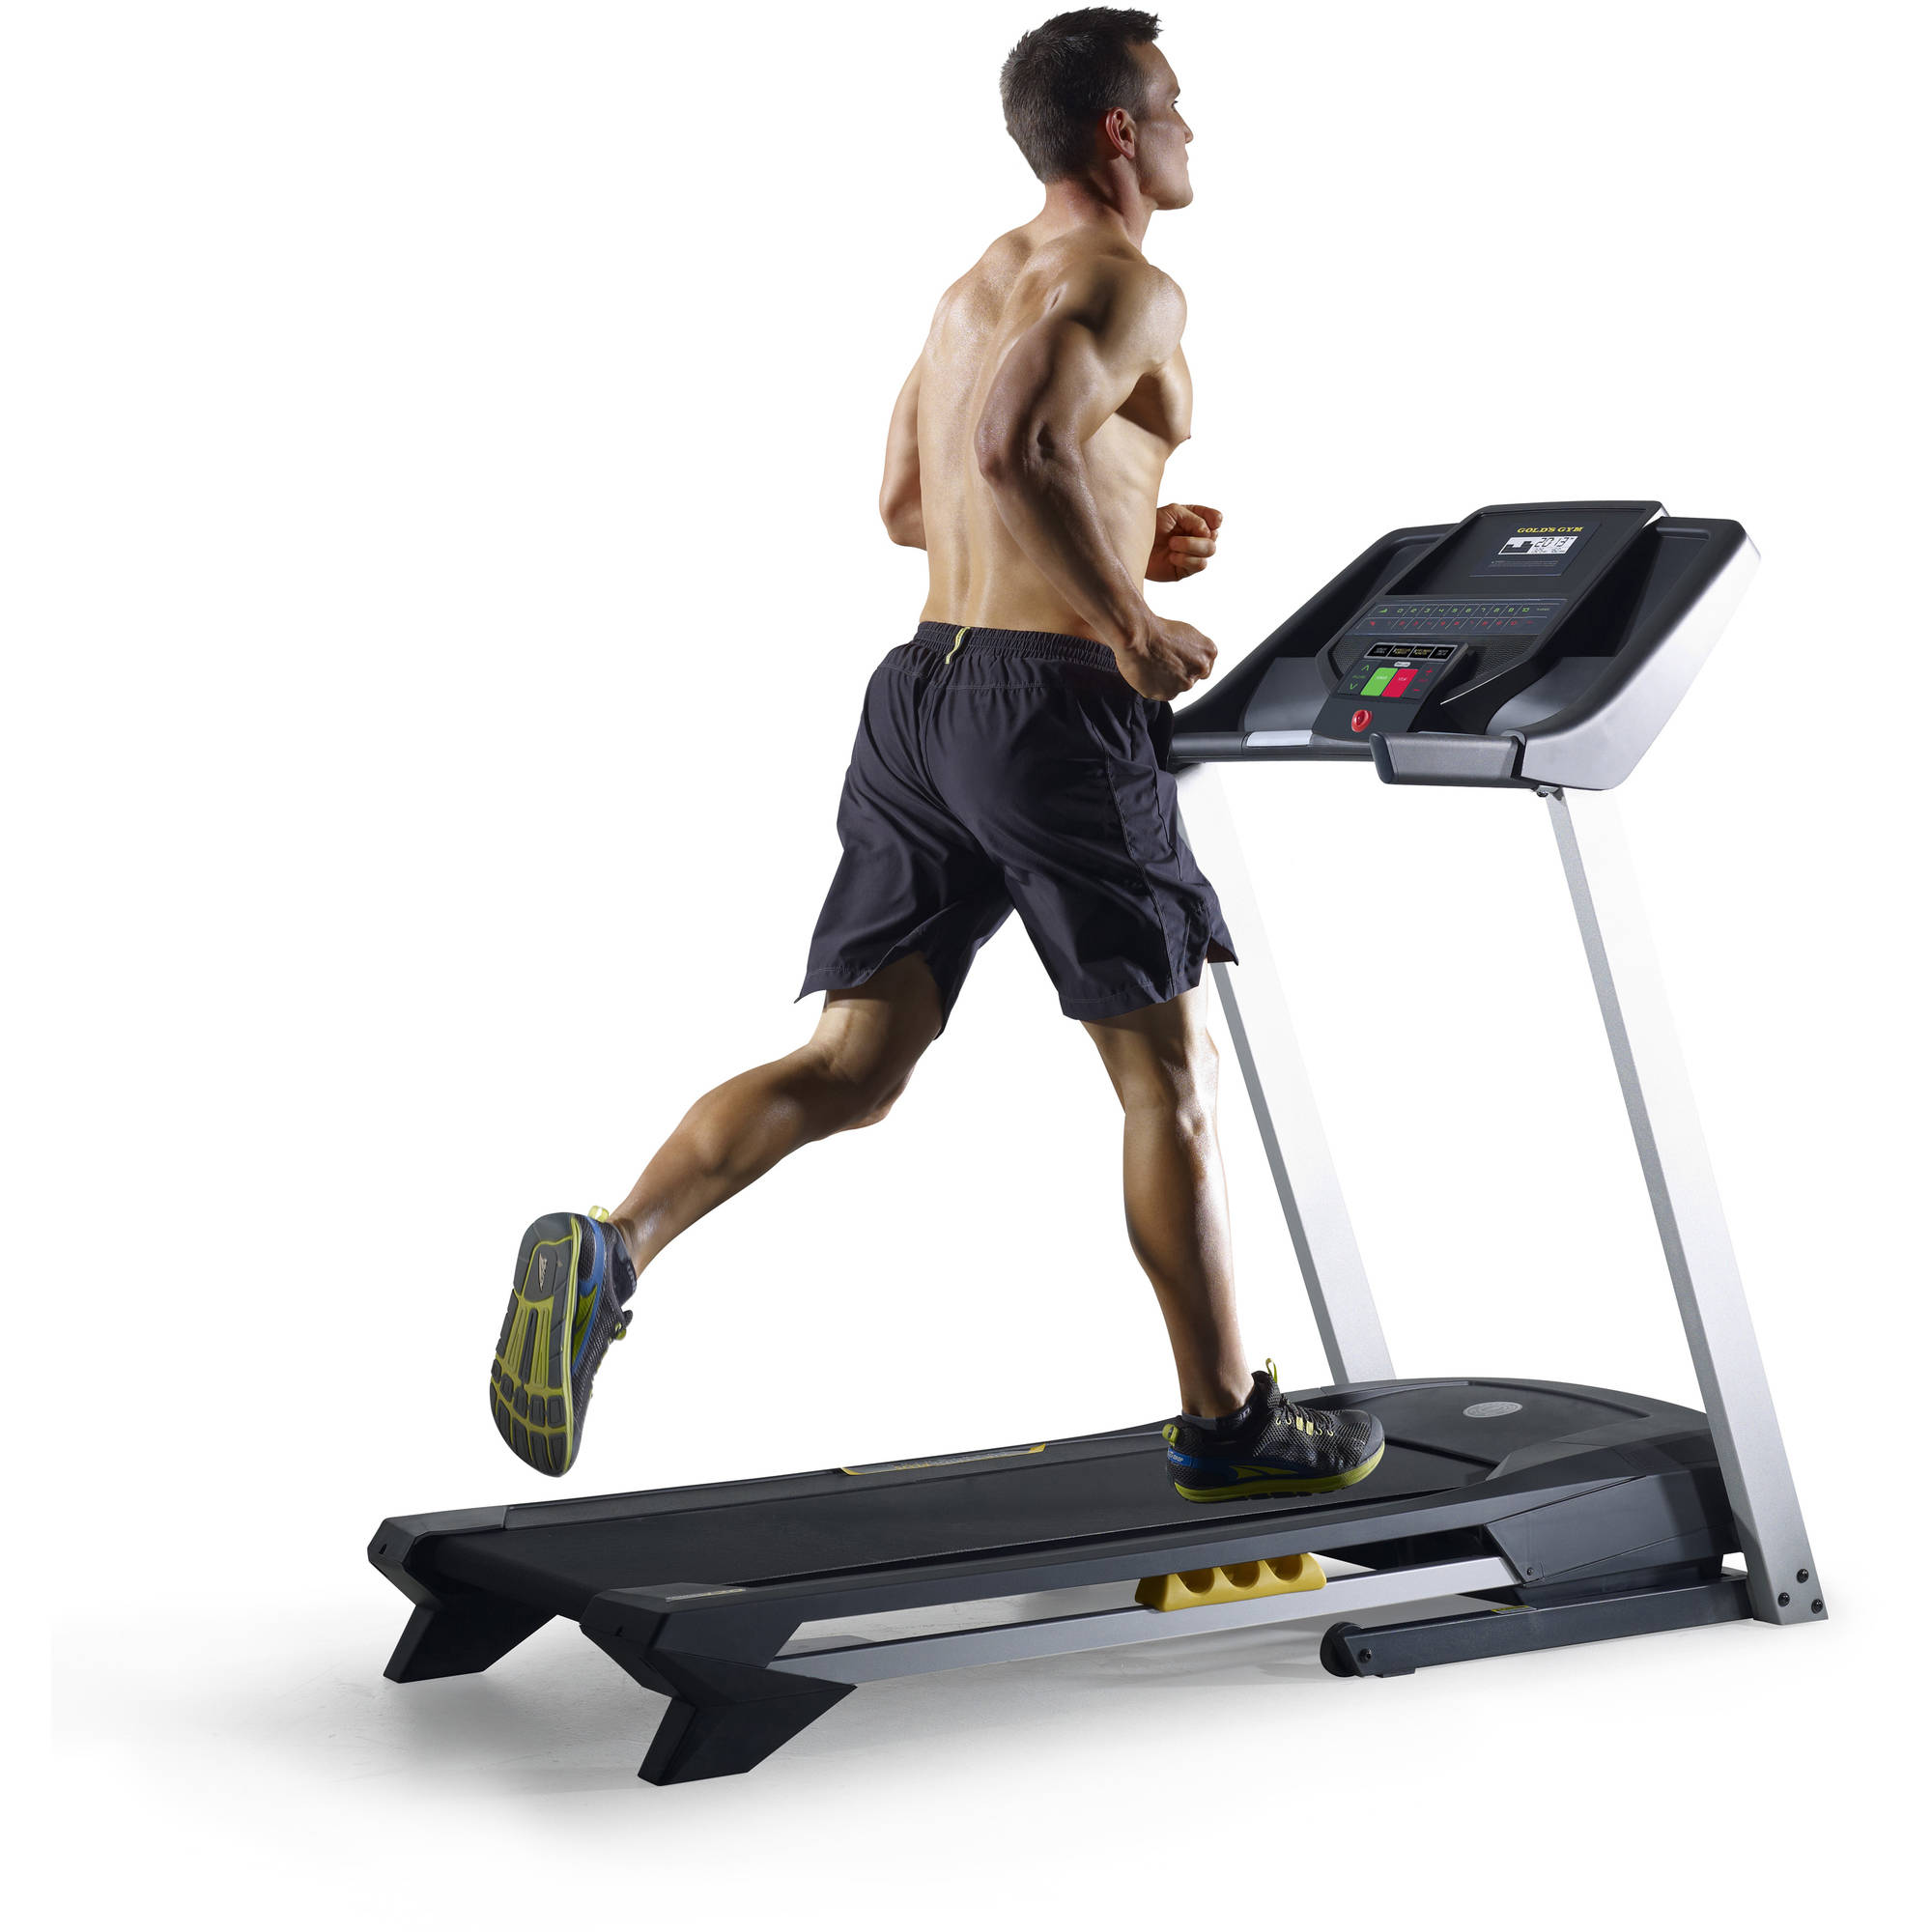 Gold's Gym 420 Treadmill with SpaceSaver Design and Heart Rate Monitor